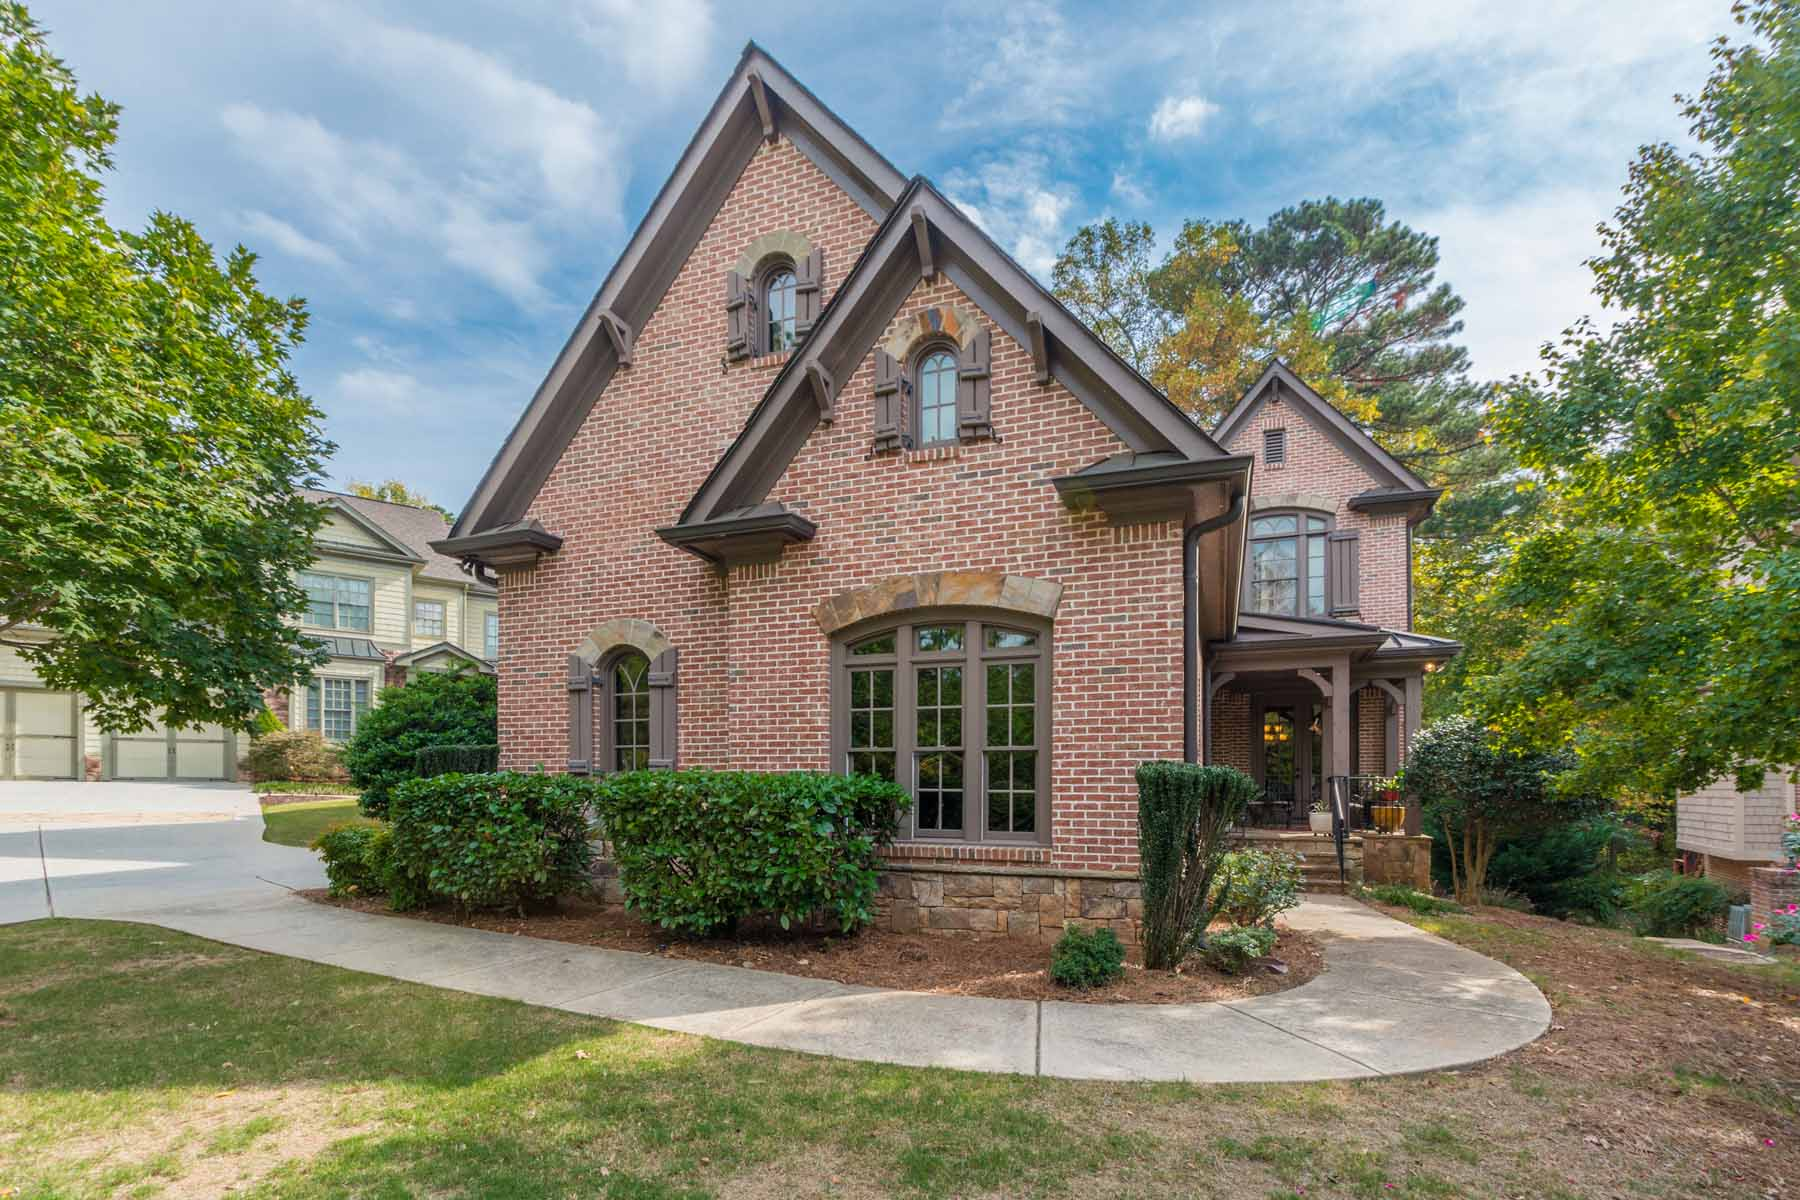 Single Family Home for Active at Stunning Brick Home In Windward On Golf Course Lot 6303 Windward Parkway Alpharetta, Georgia 30005 United States